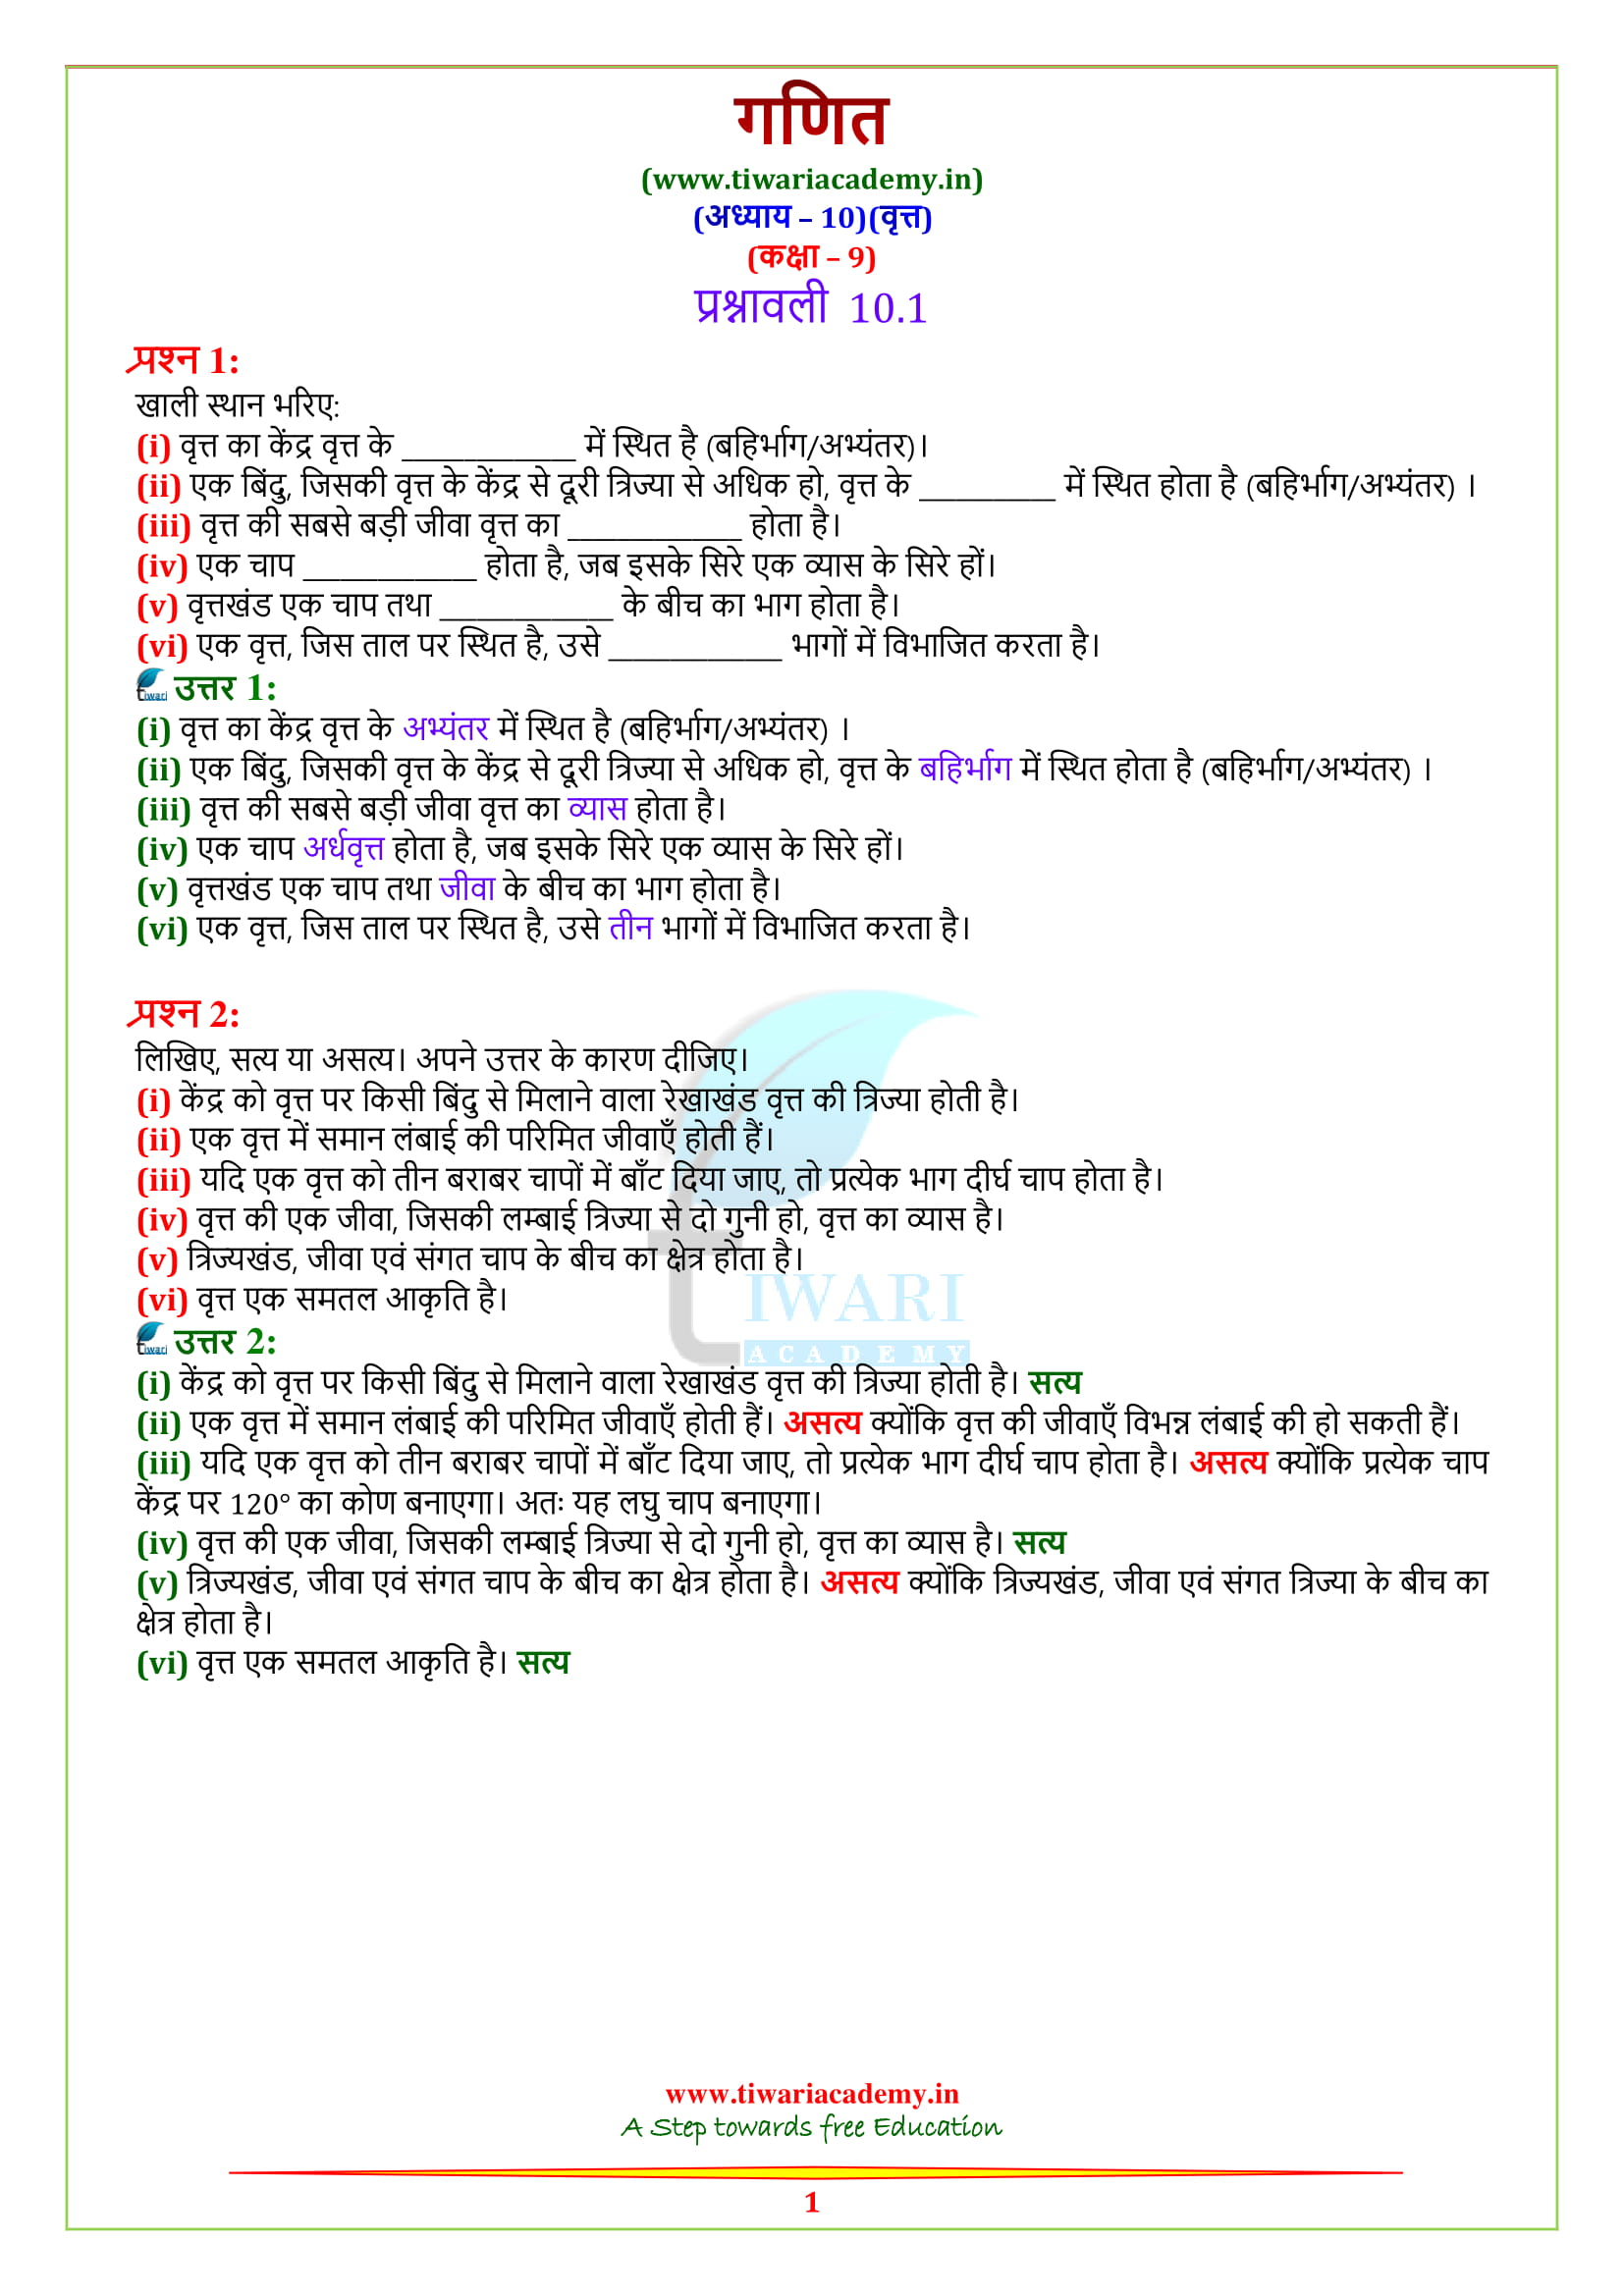 9 Maths Exercise 10.1 solutions in hindi